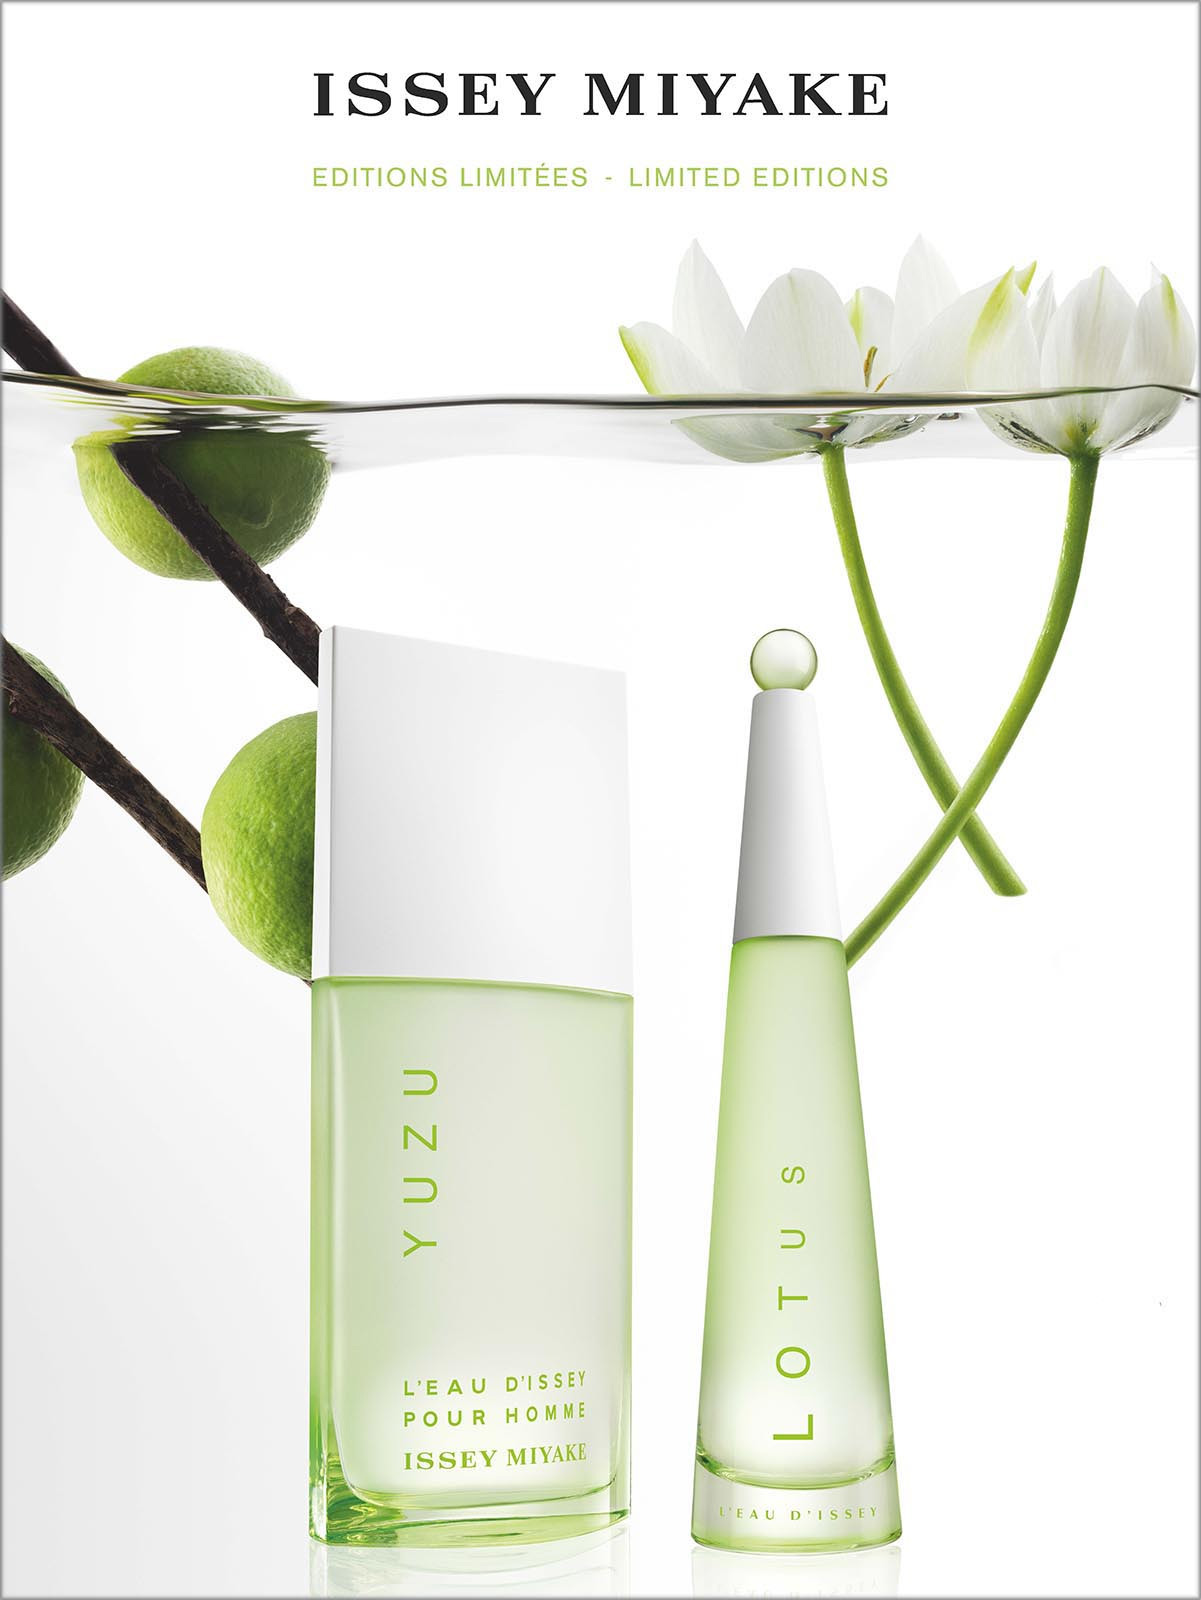 Leau Dissey Lotus Issey Miyake Perfume A Fragrance For Women 2014